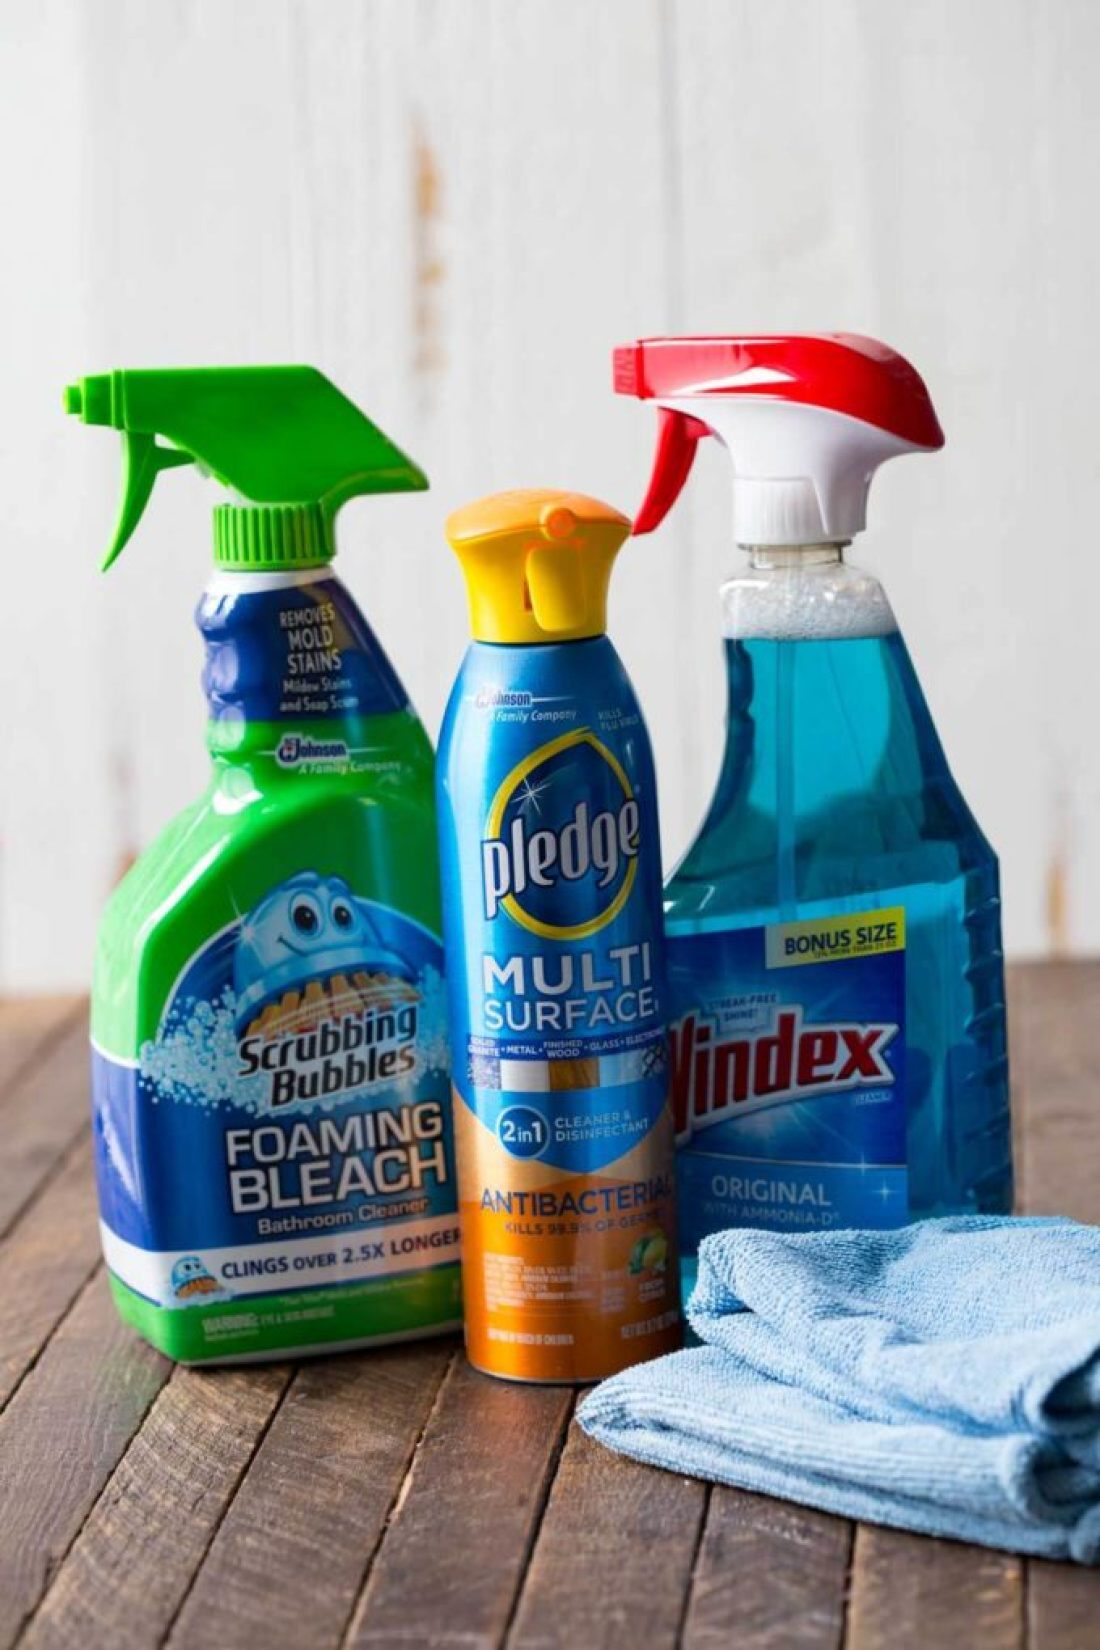 Cleaning products to get my home holiday ready